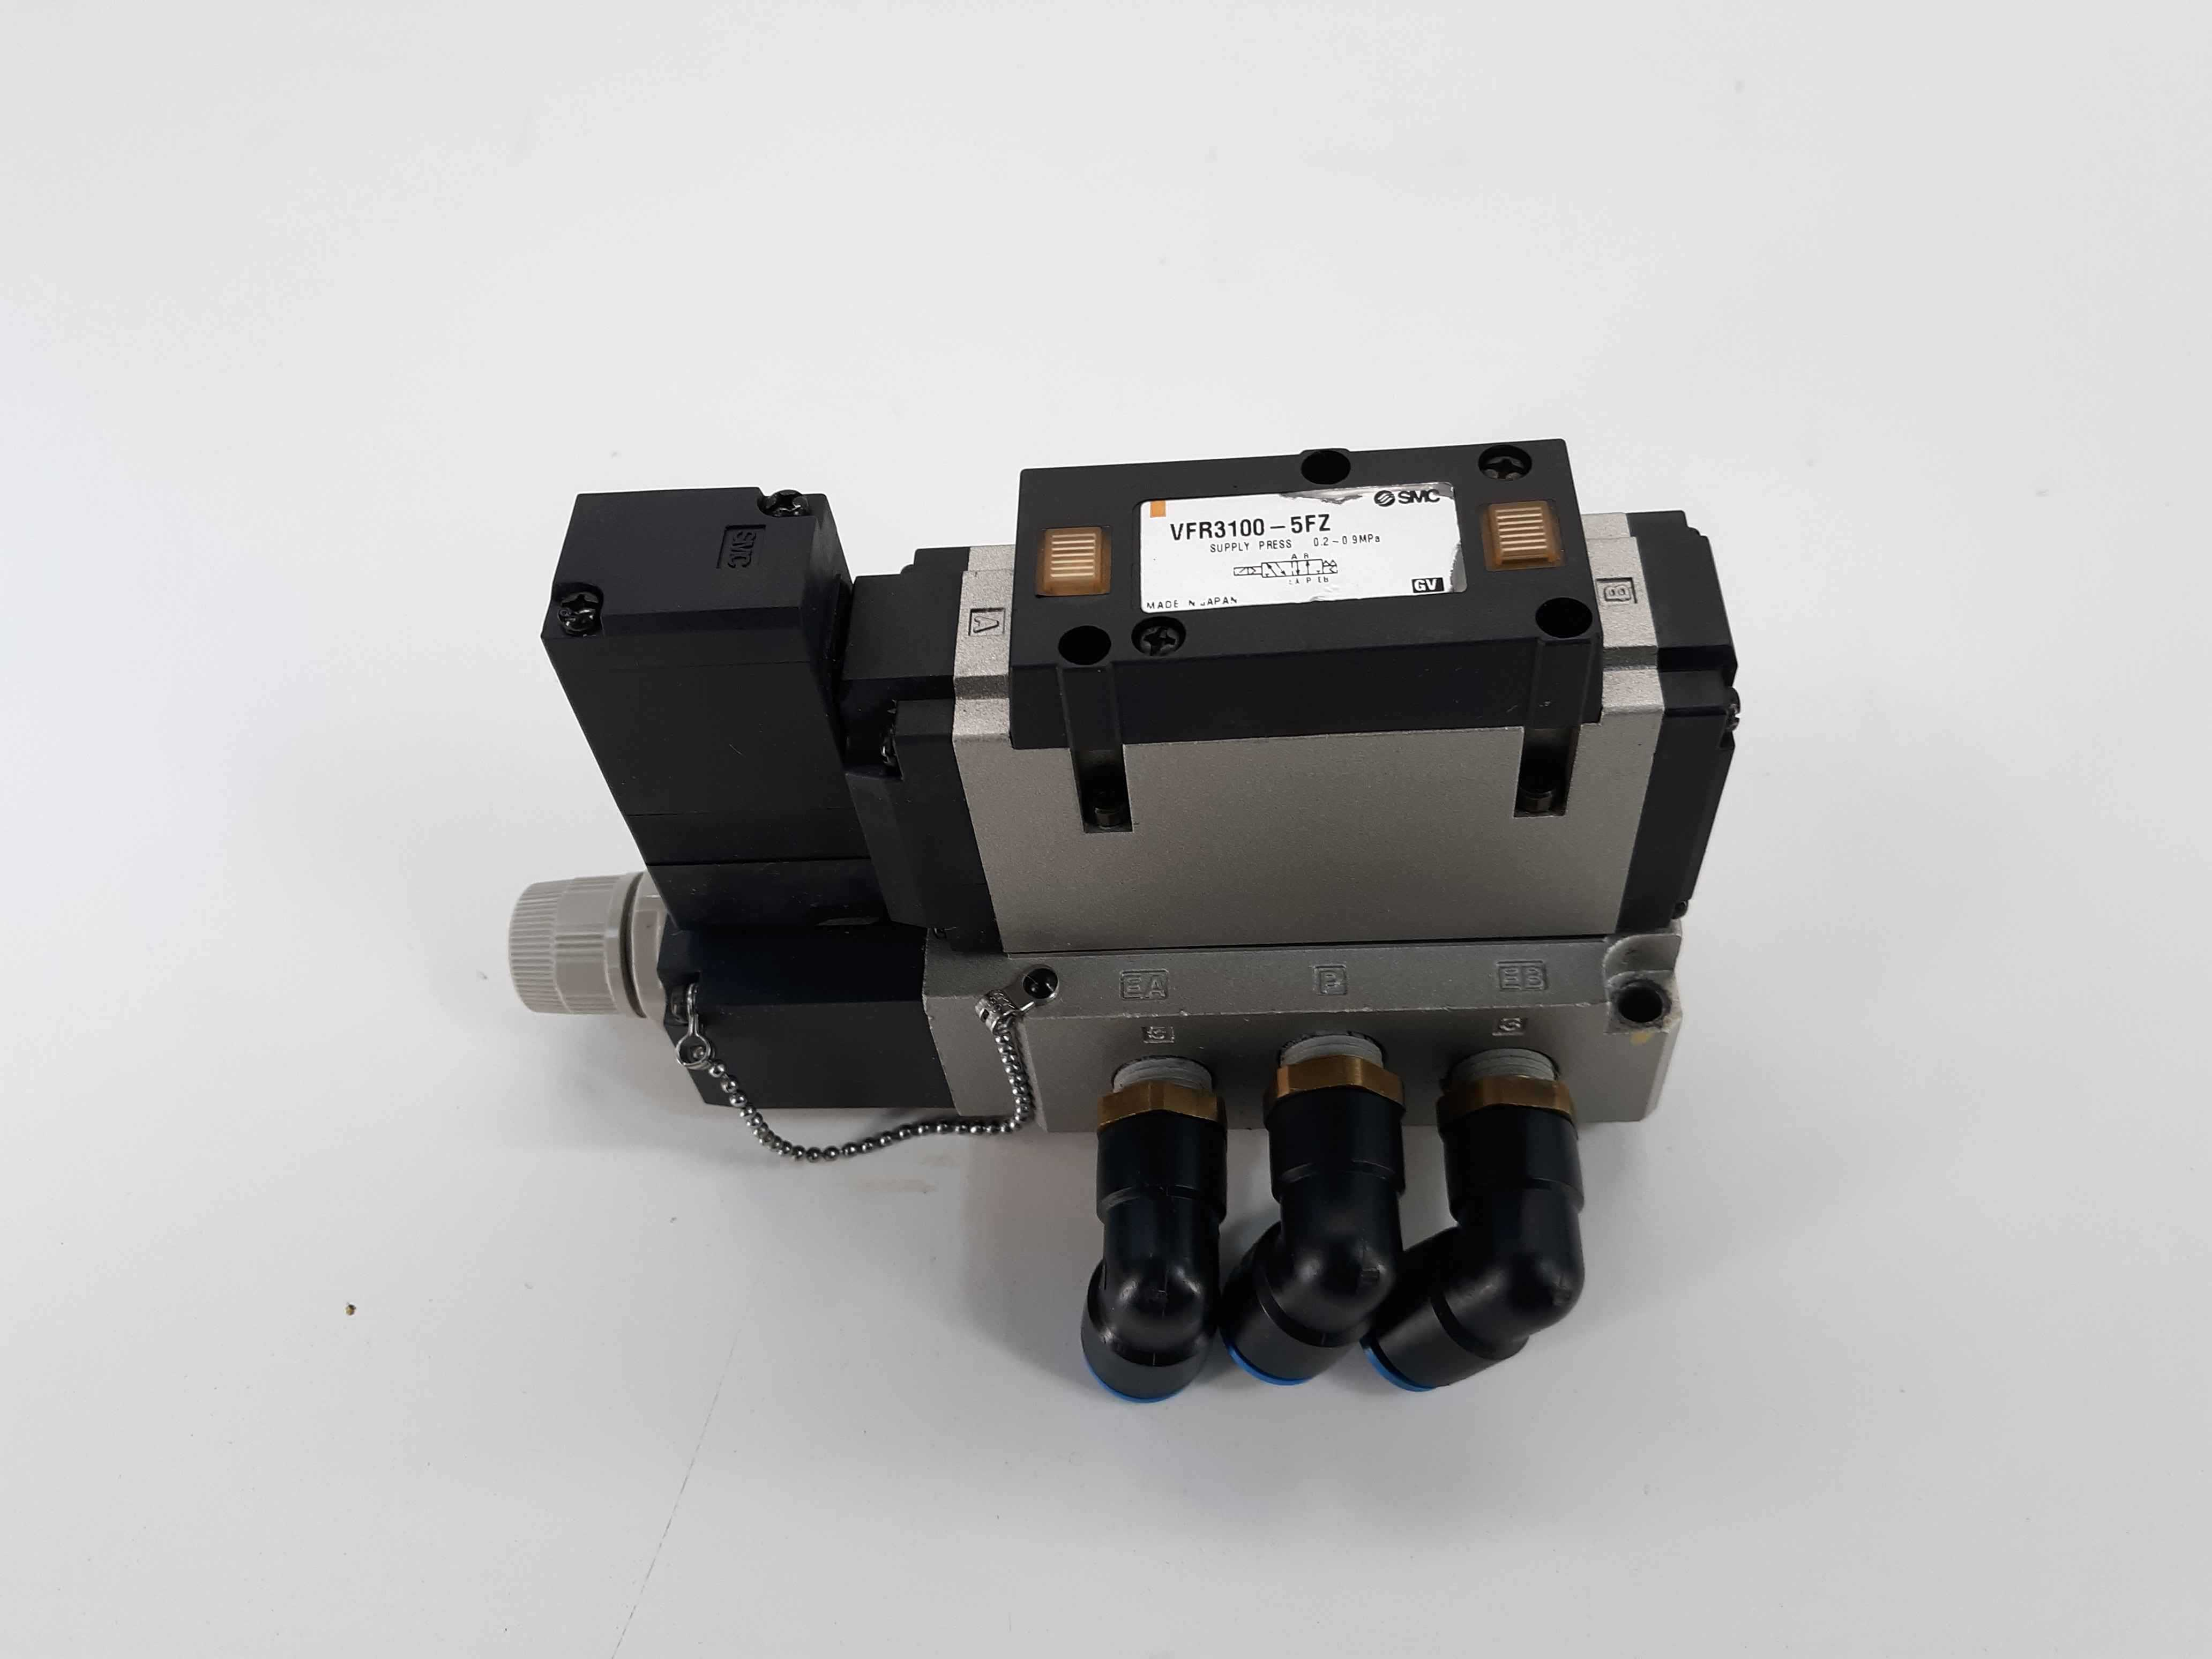 SMC VFR3100-5FZ 2-Position Solenoid Air Control Valve 24VDC 5-Way